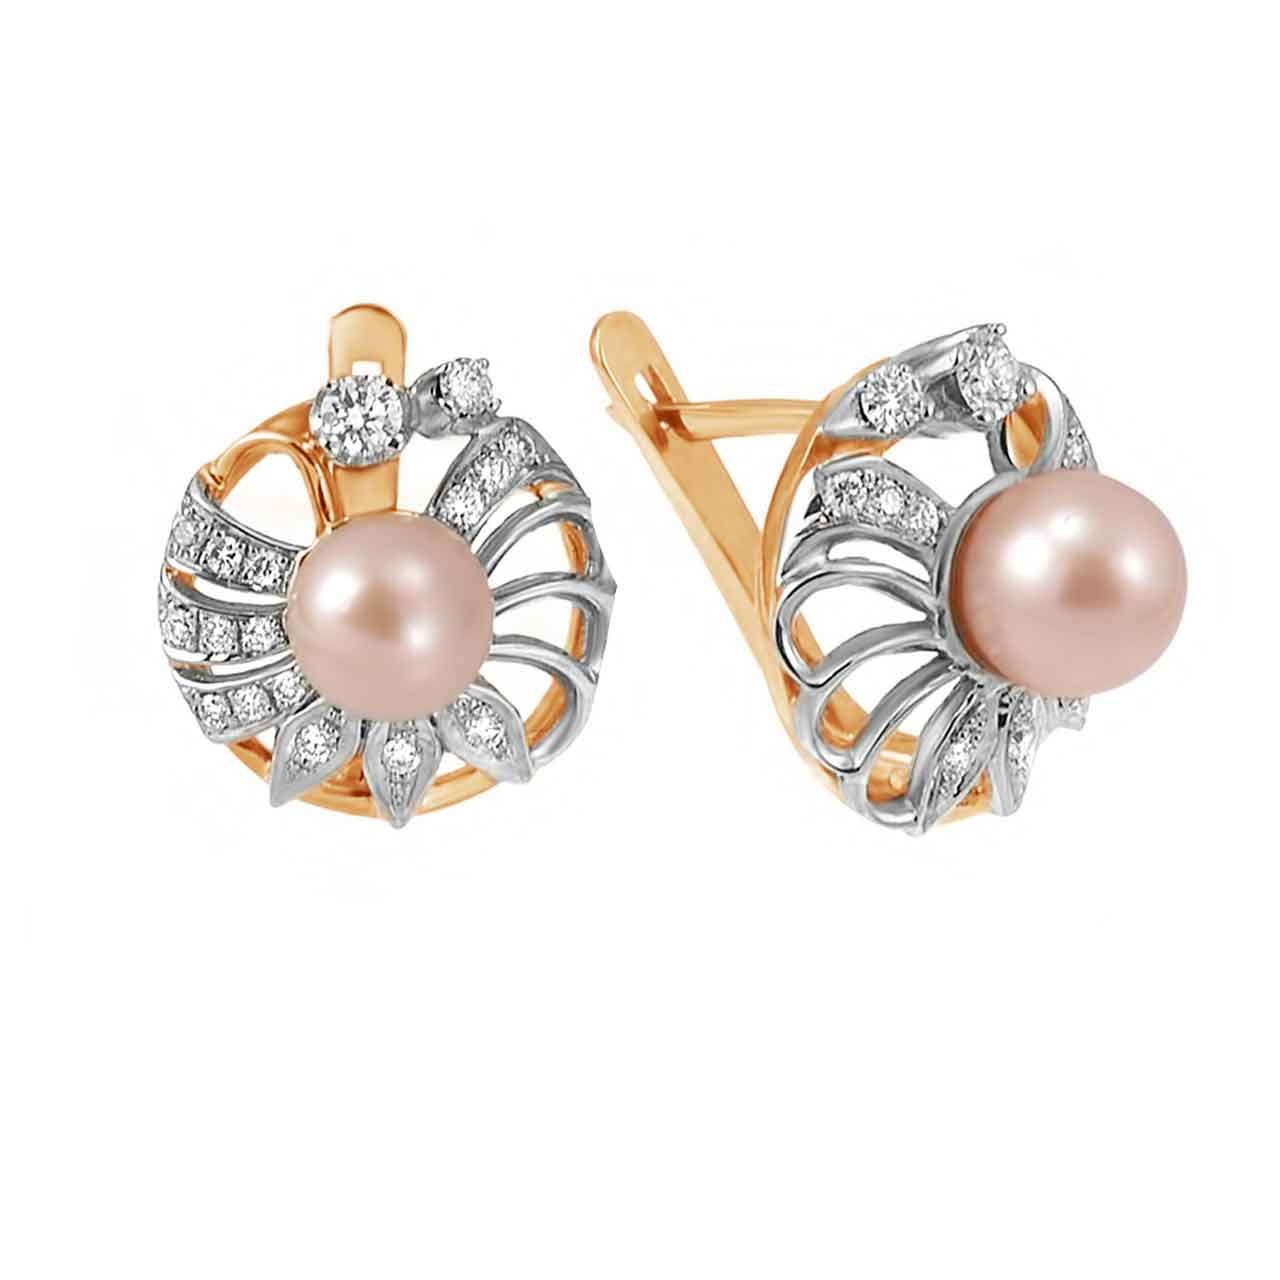 Pink pearl earrings on sale 1